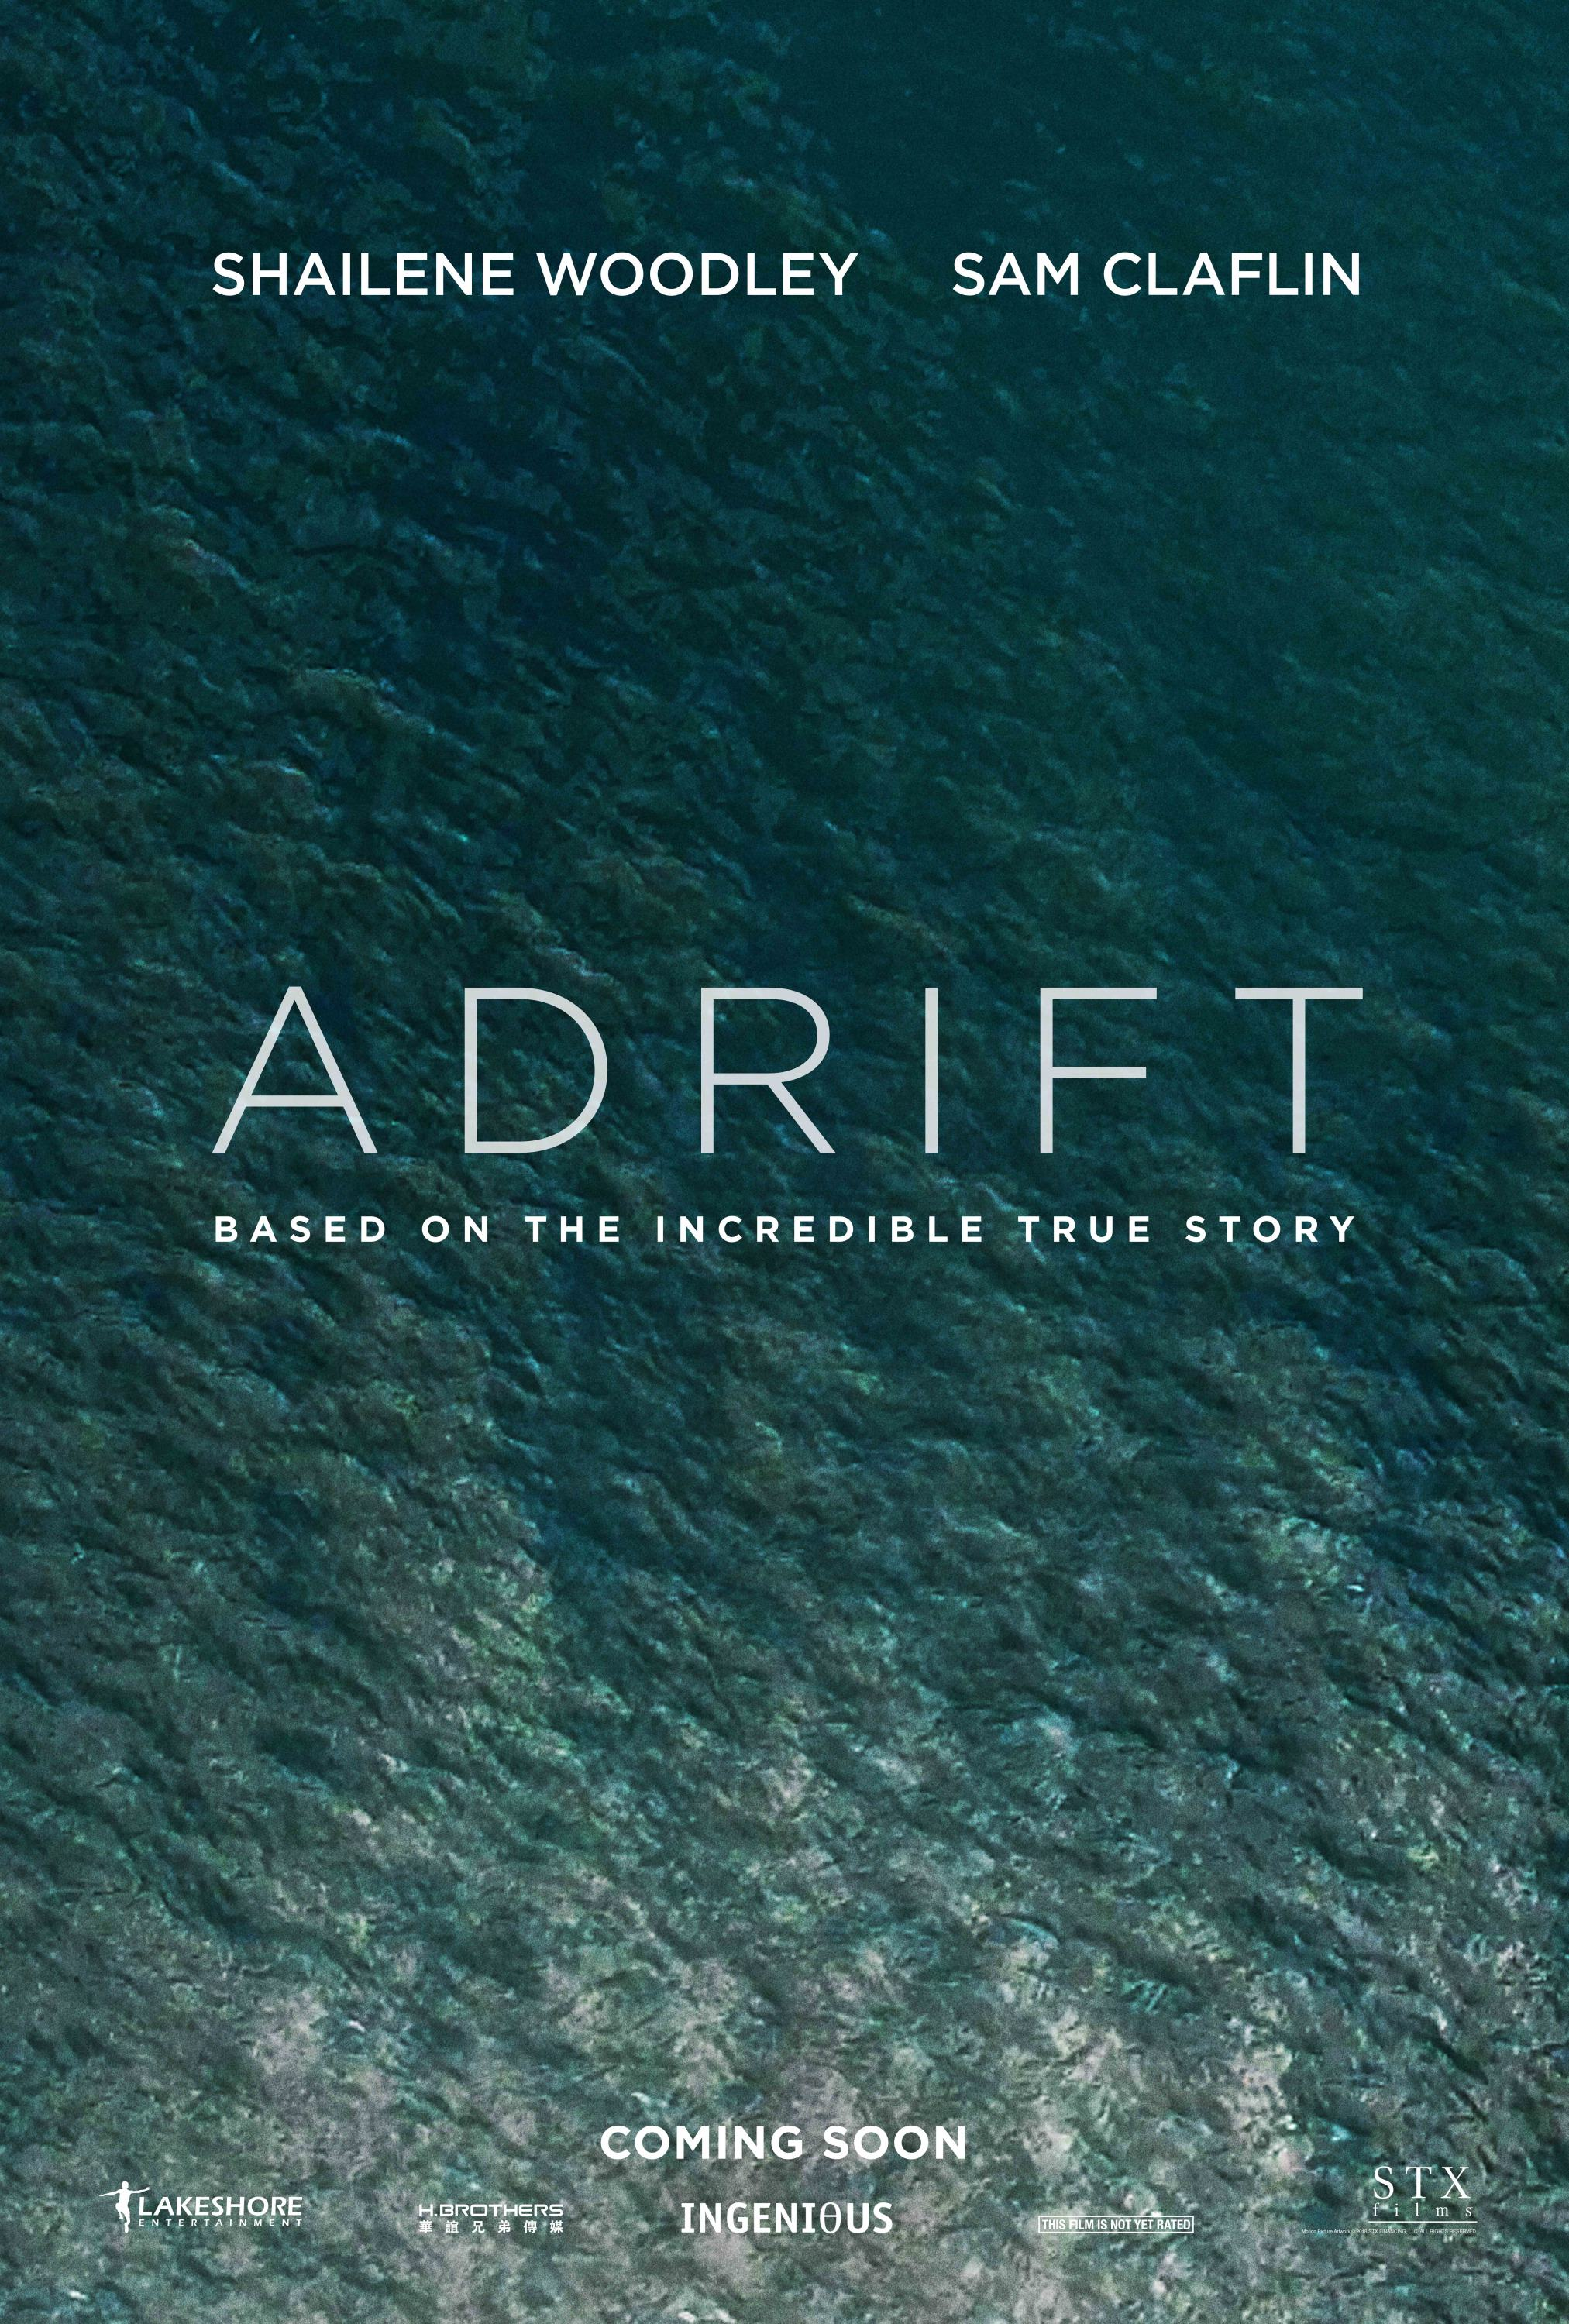 Adrift (2018) - Directed by: Baltasar KormakurStarring: Shailene Woodley, Sam ClaflinRated:PG-13Running Time: 1h 36mTMM Score: 1 star out of 5STRENGTHS: NoneWEAKNESSES: Acting, Editing, Pacing, Predictability, Writing